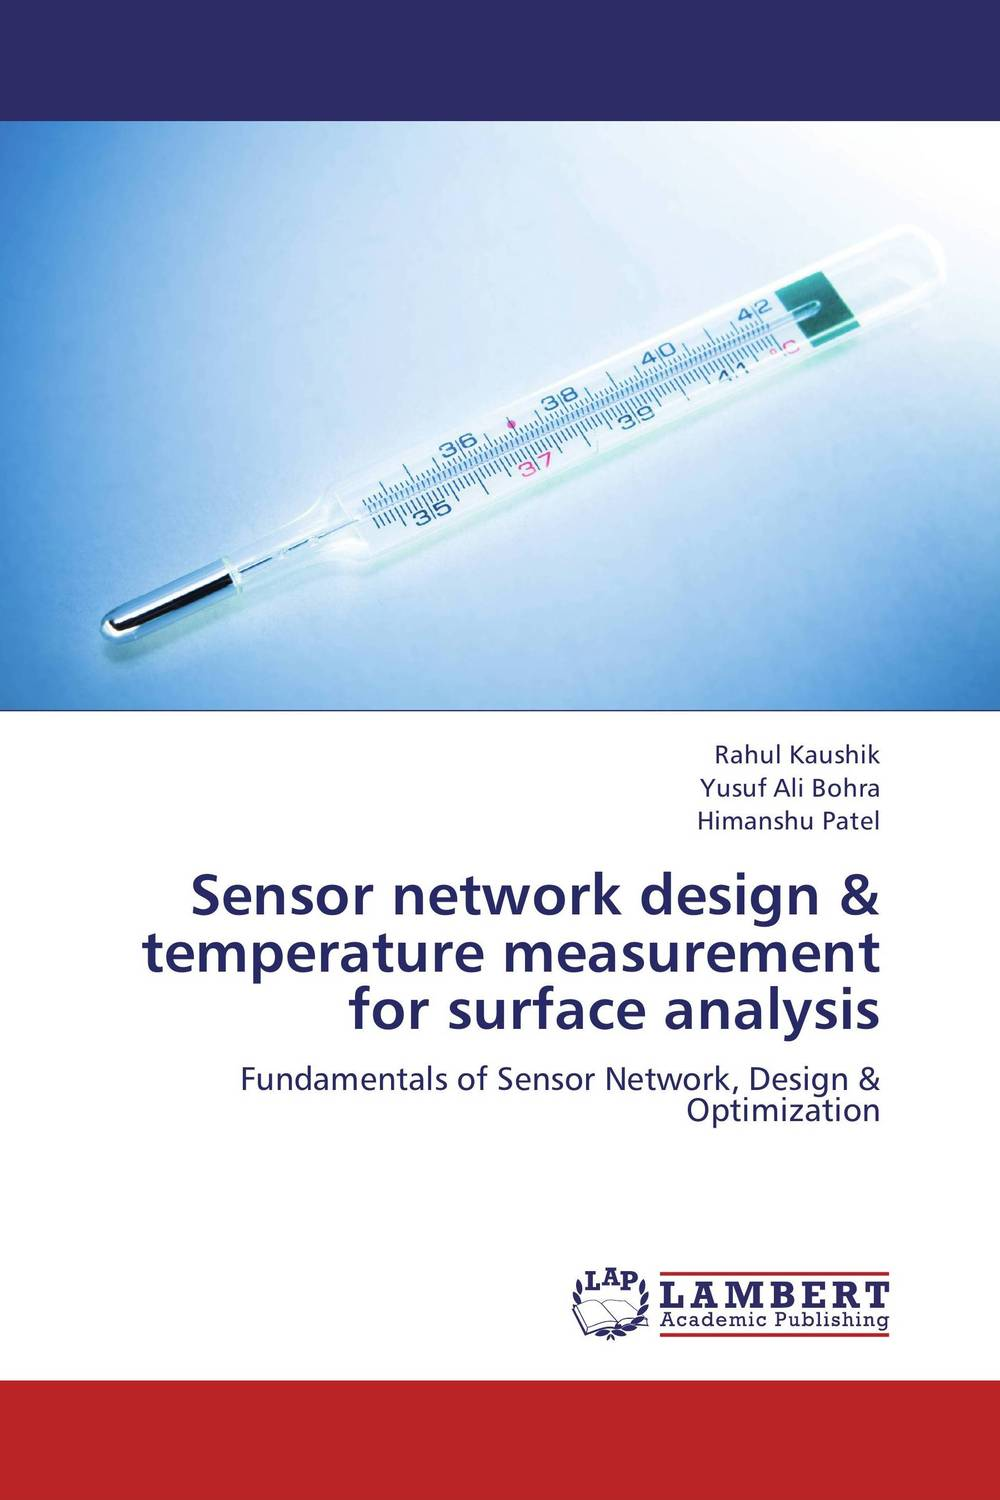 Sensor network design & temperature measurement for surface analysis